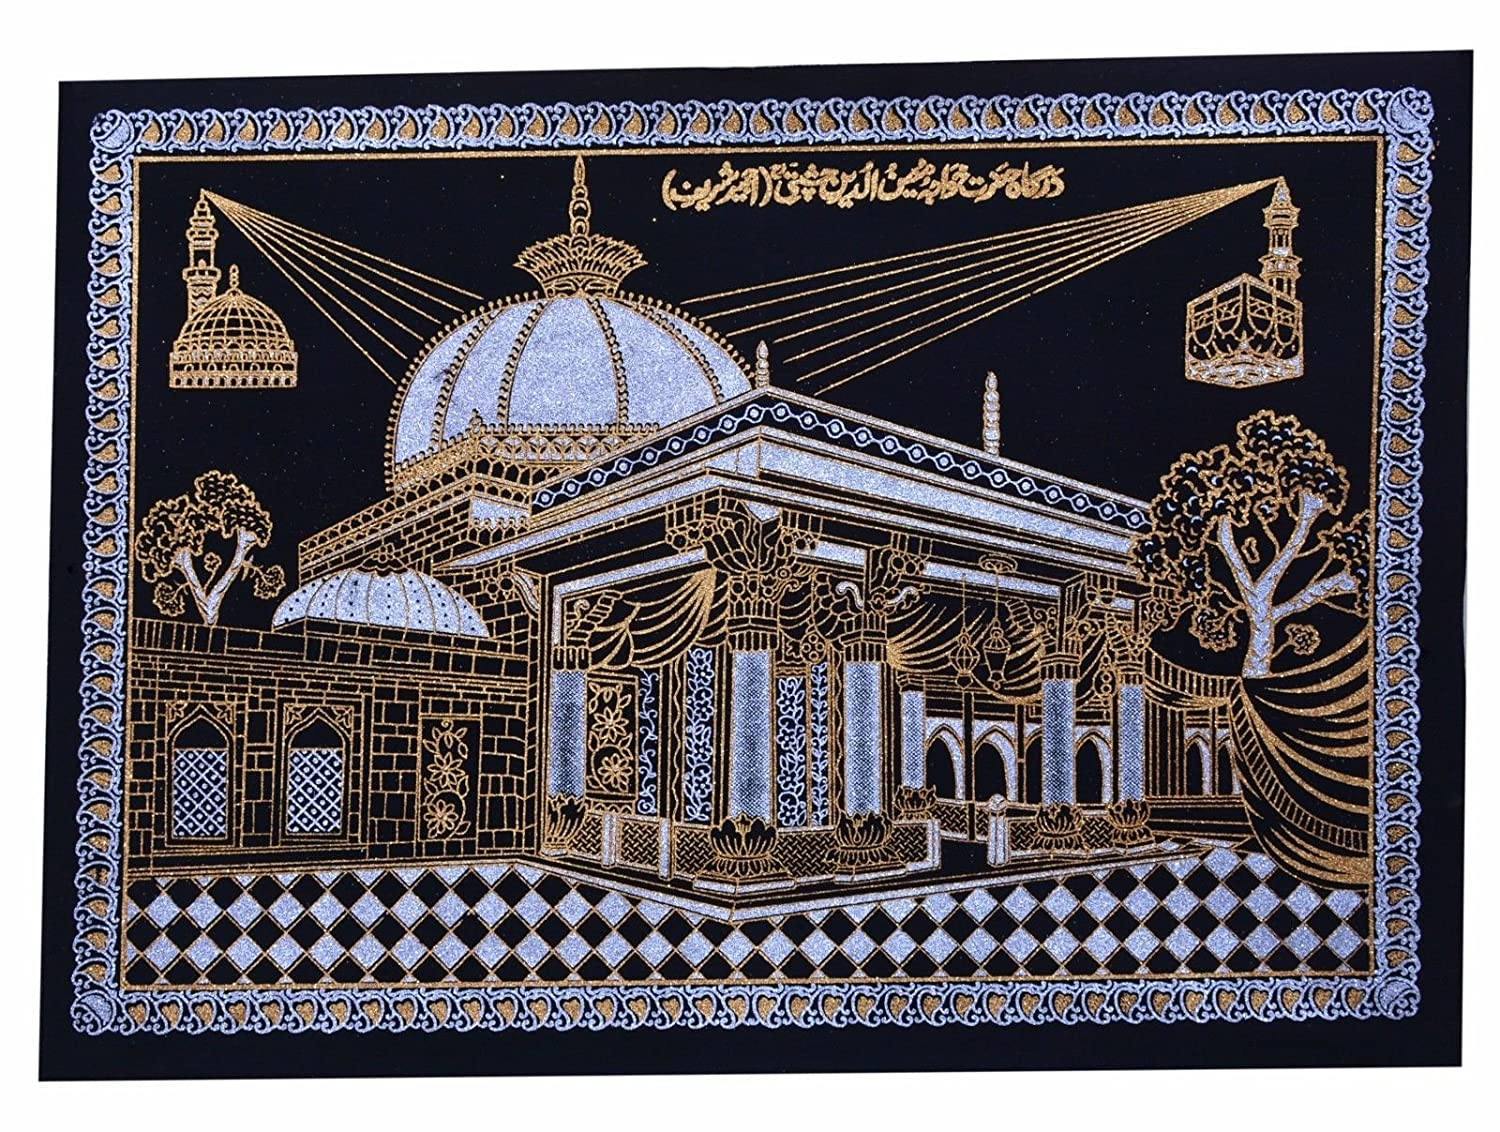 Buy ajmer sharif islamic art khwaja garib nawaj kalma shining buy ajmer sharif islamic art khwaja garib nawaj kalma shining printed wall hanging online at low prices in india amazon thecheapjerseys Images